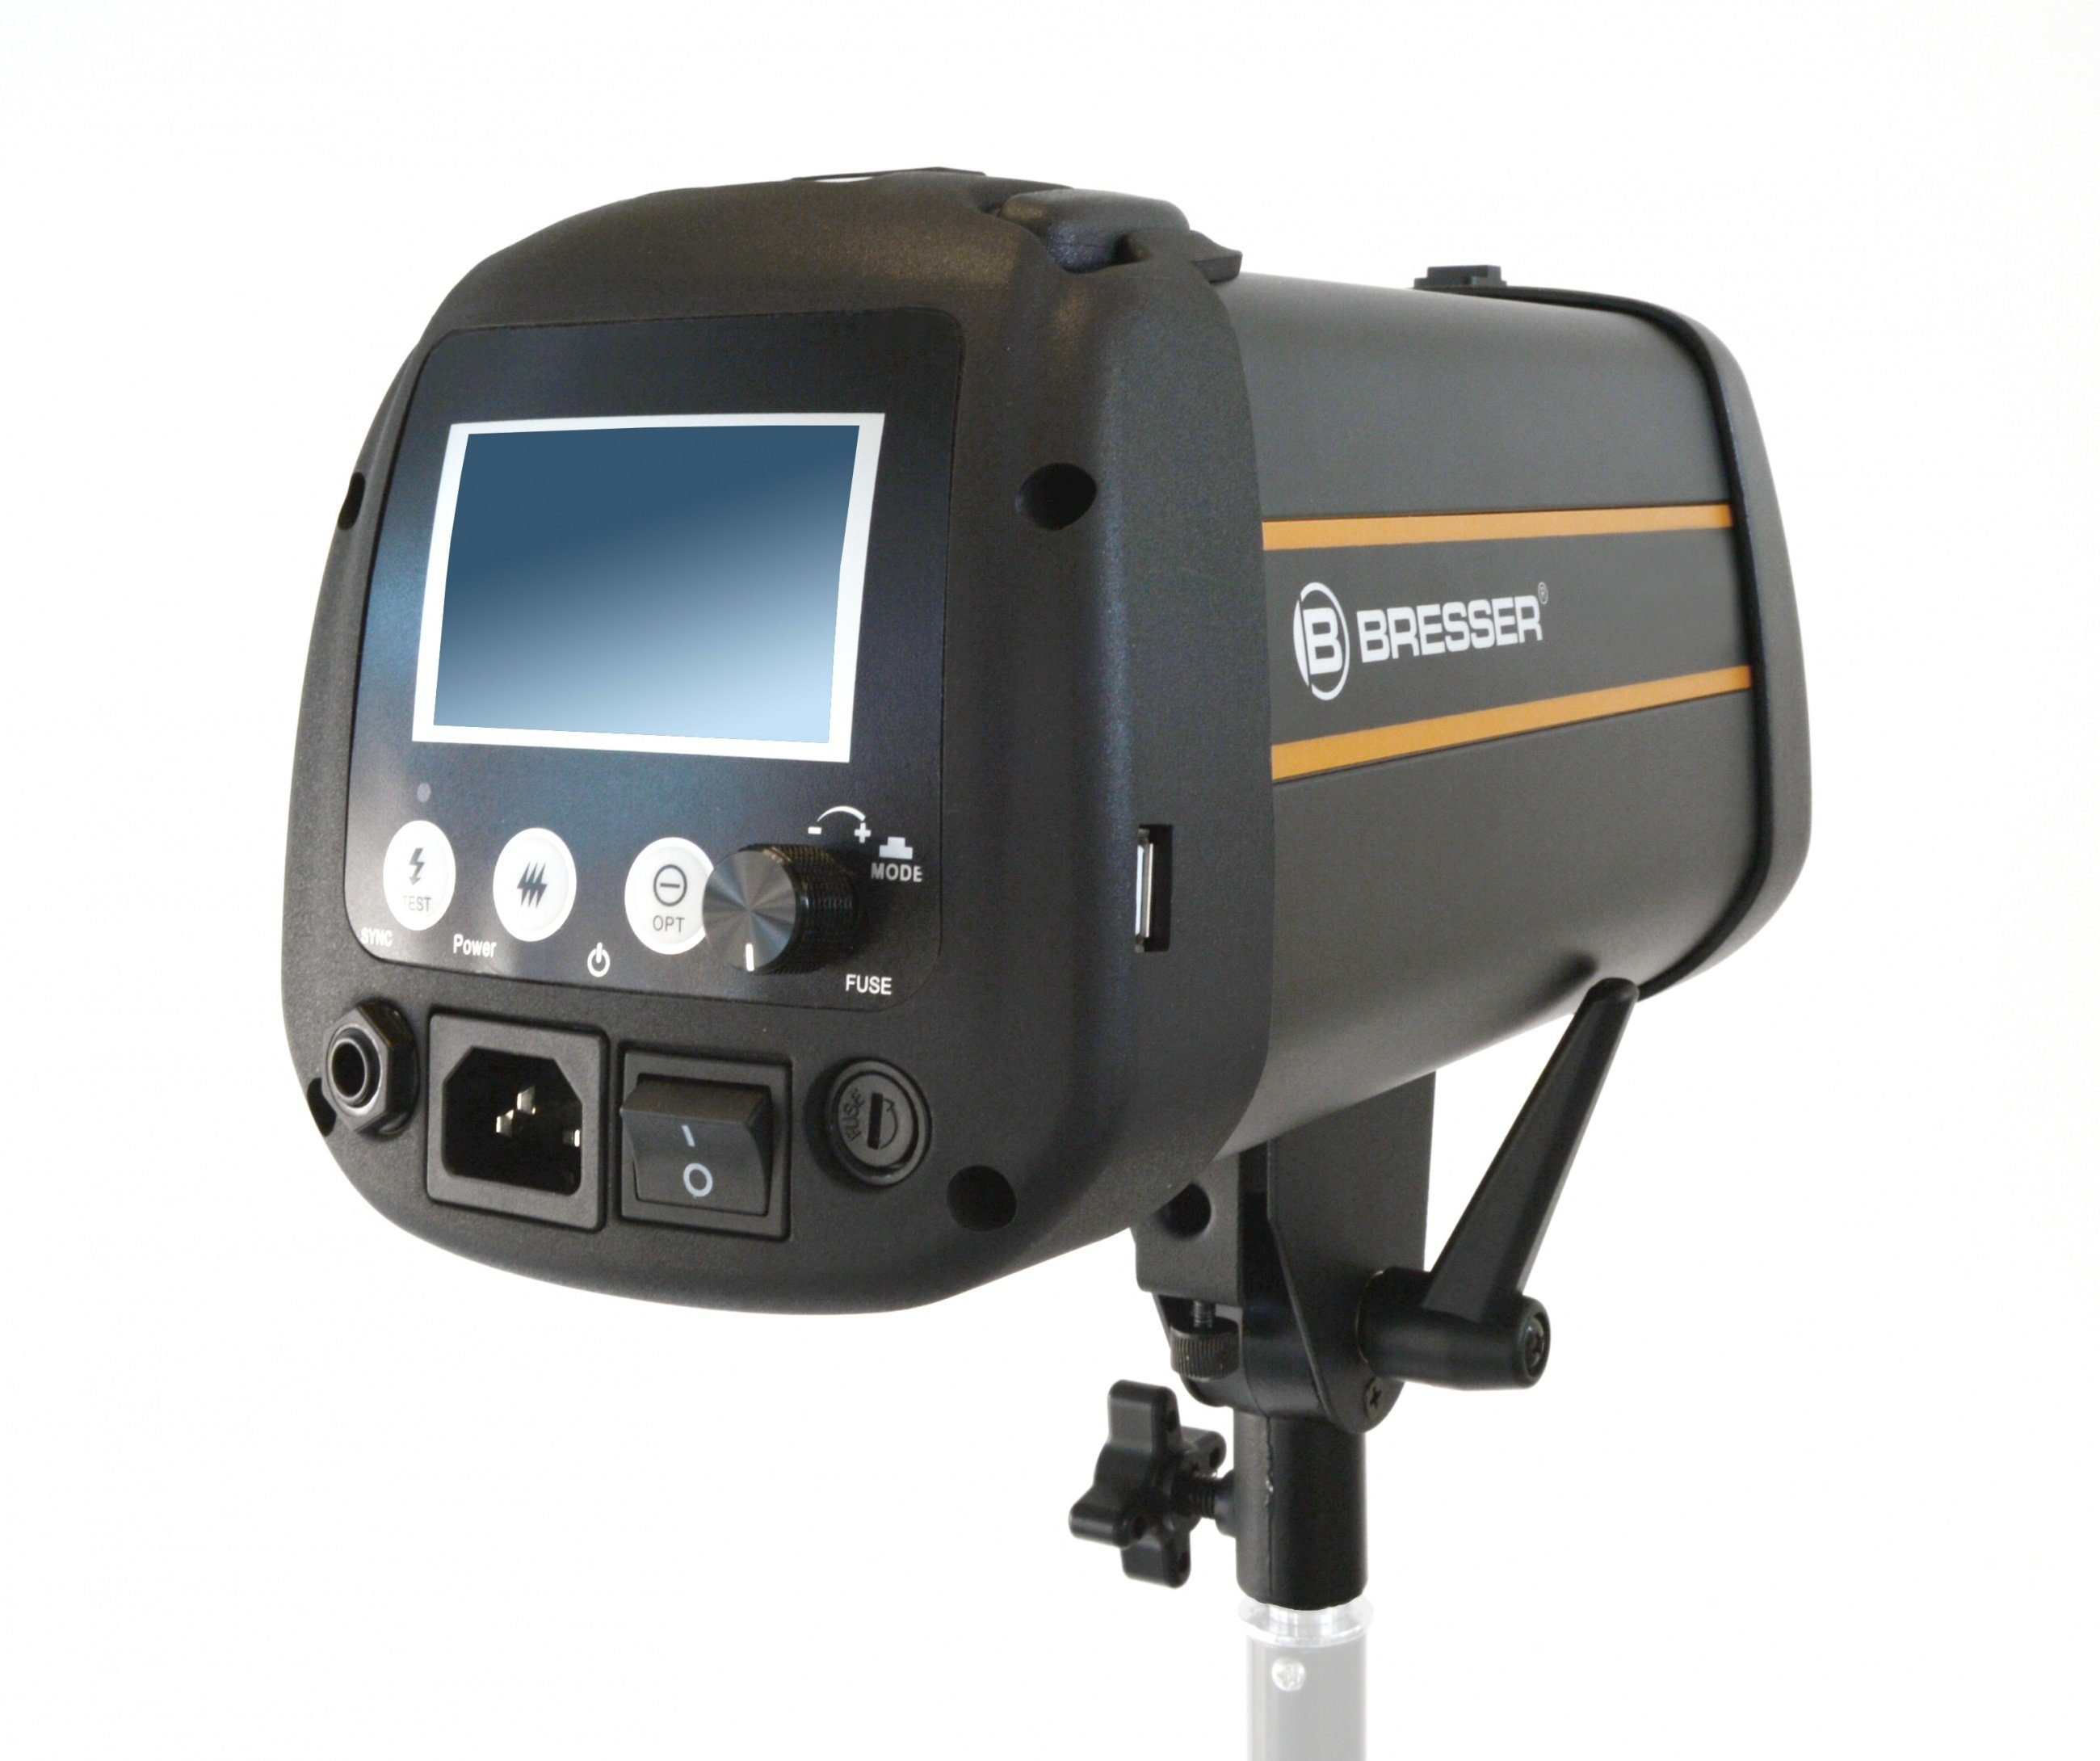 BRESSER Fotostudio »BRESSER FM-600 High Speed Studioblitz«